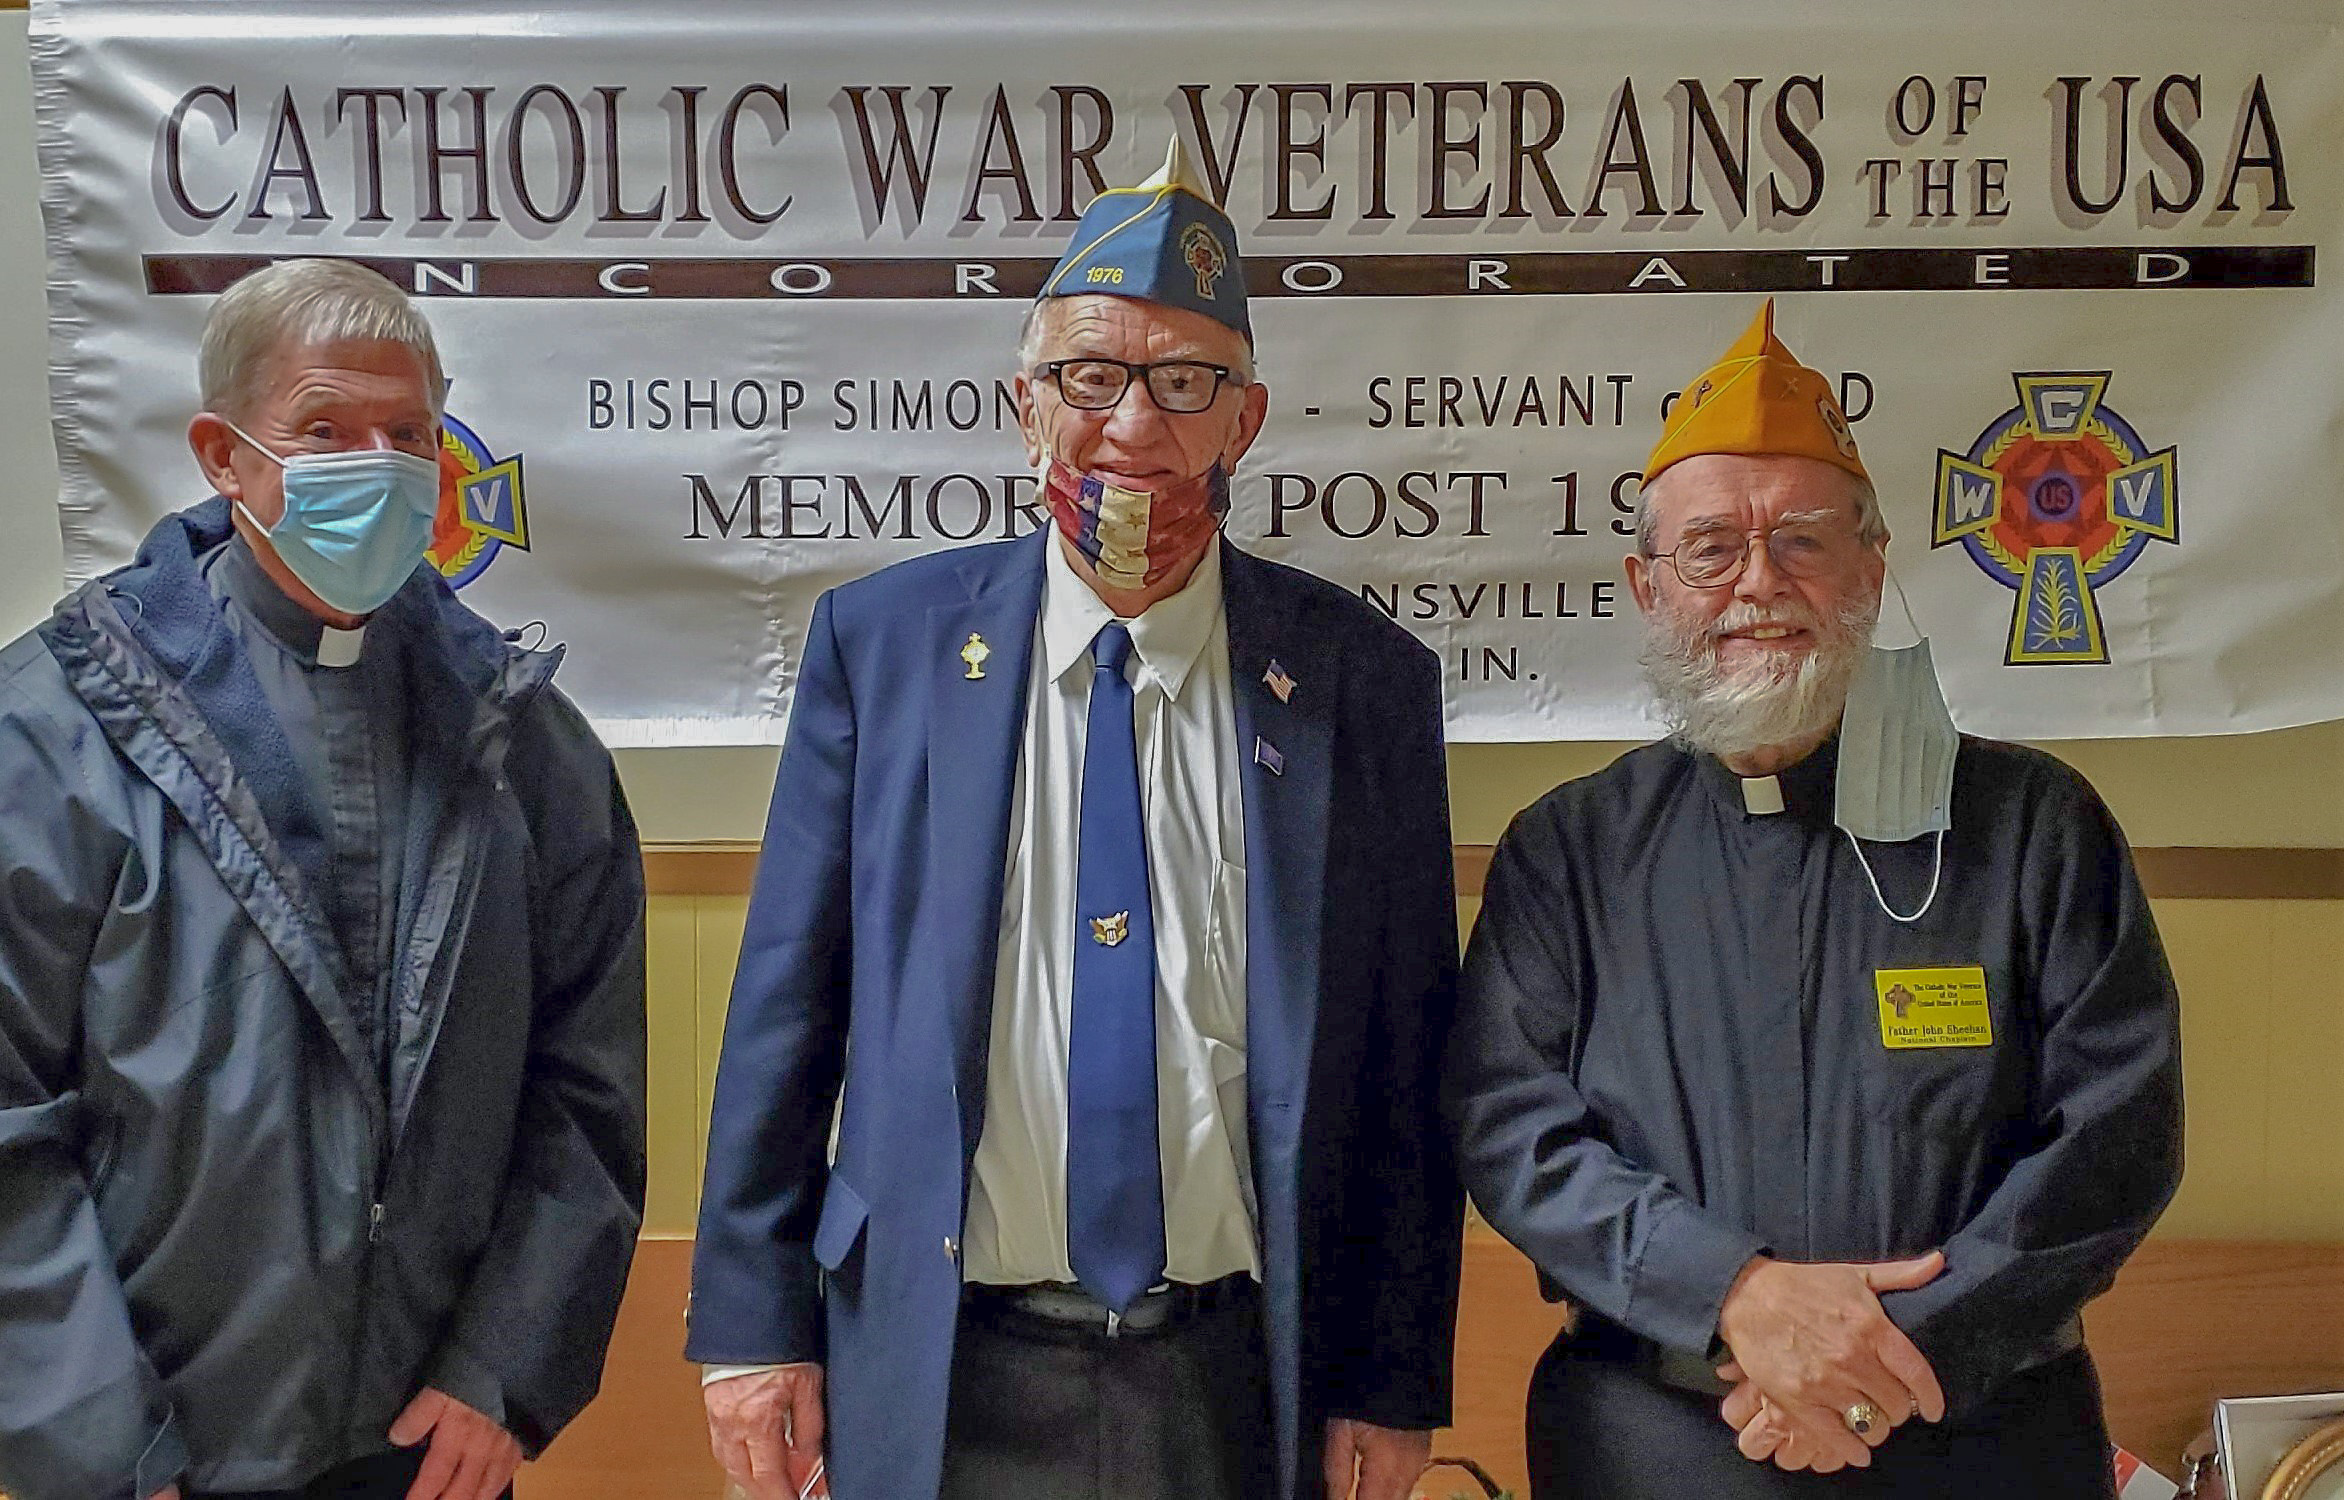 """Father Kenneth Walker, left, Chaplain of Post 1976 of the Catholic War Veterans of the USA, joins post Commander George """"Bud"""" Erler and Jesuit Father John R. Sheehan, National Chaplain of the Catholic War Veterans, for a photo during Father Sheehan's visit to Post 1976. Submitted photo"""